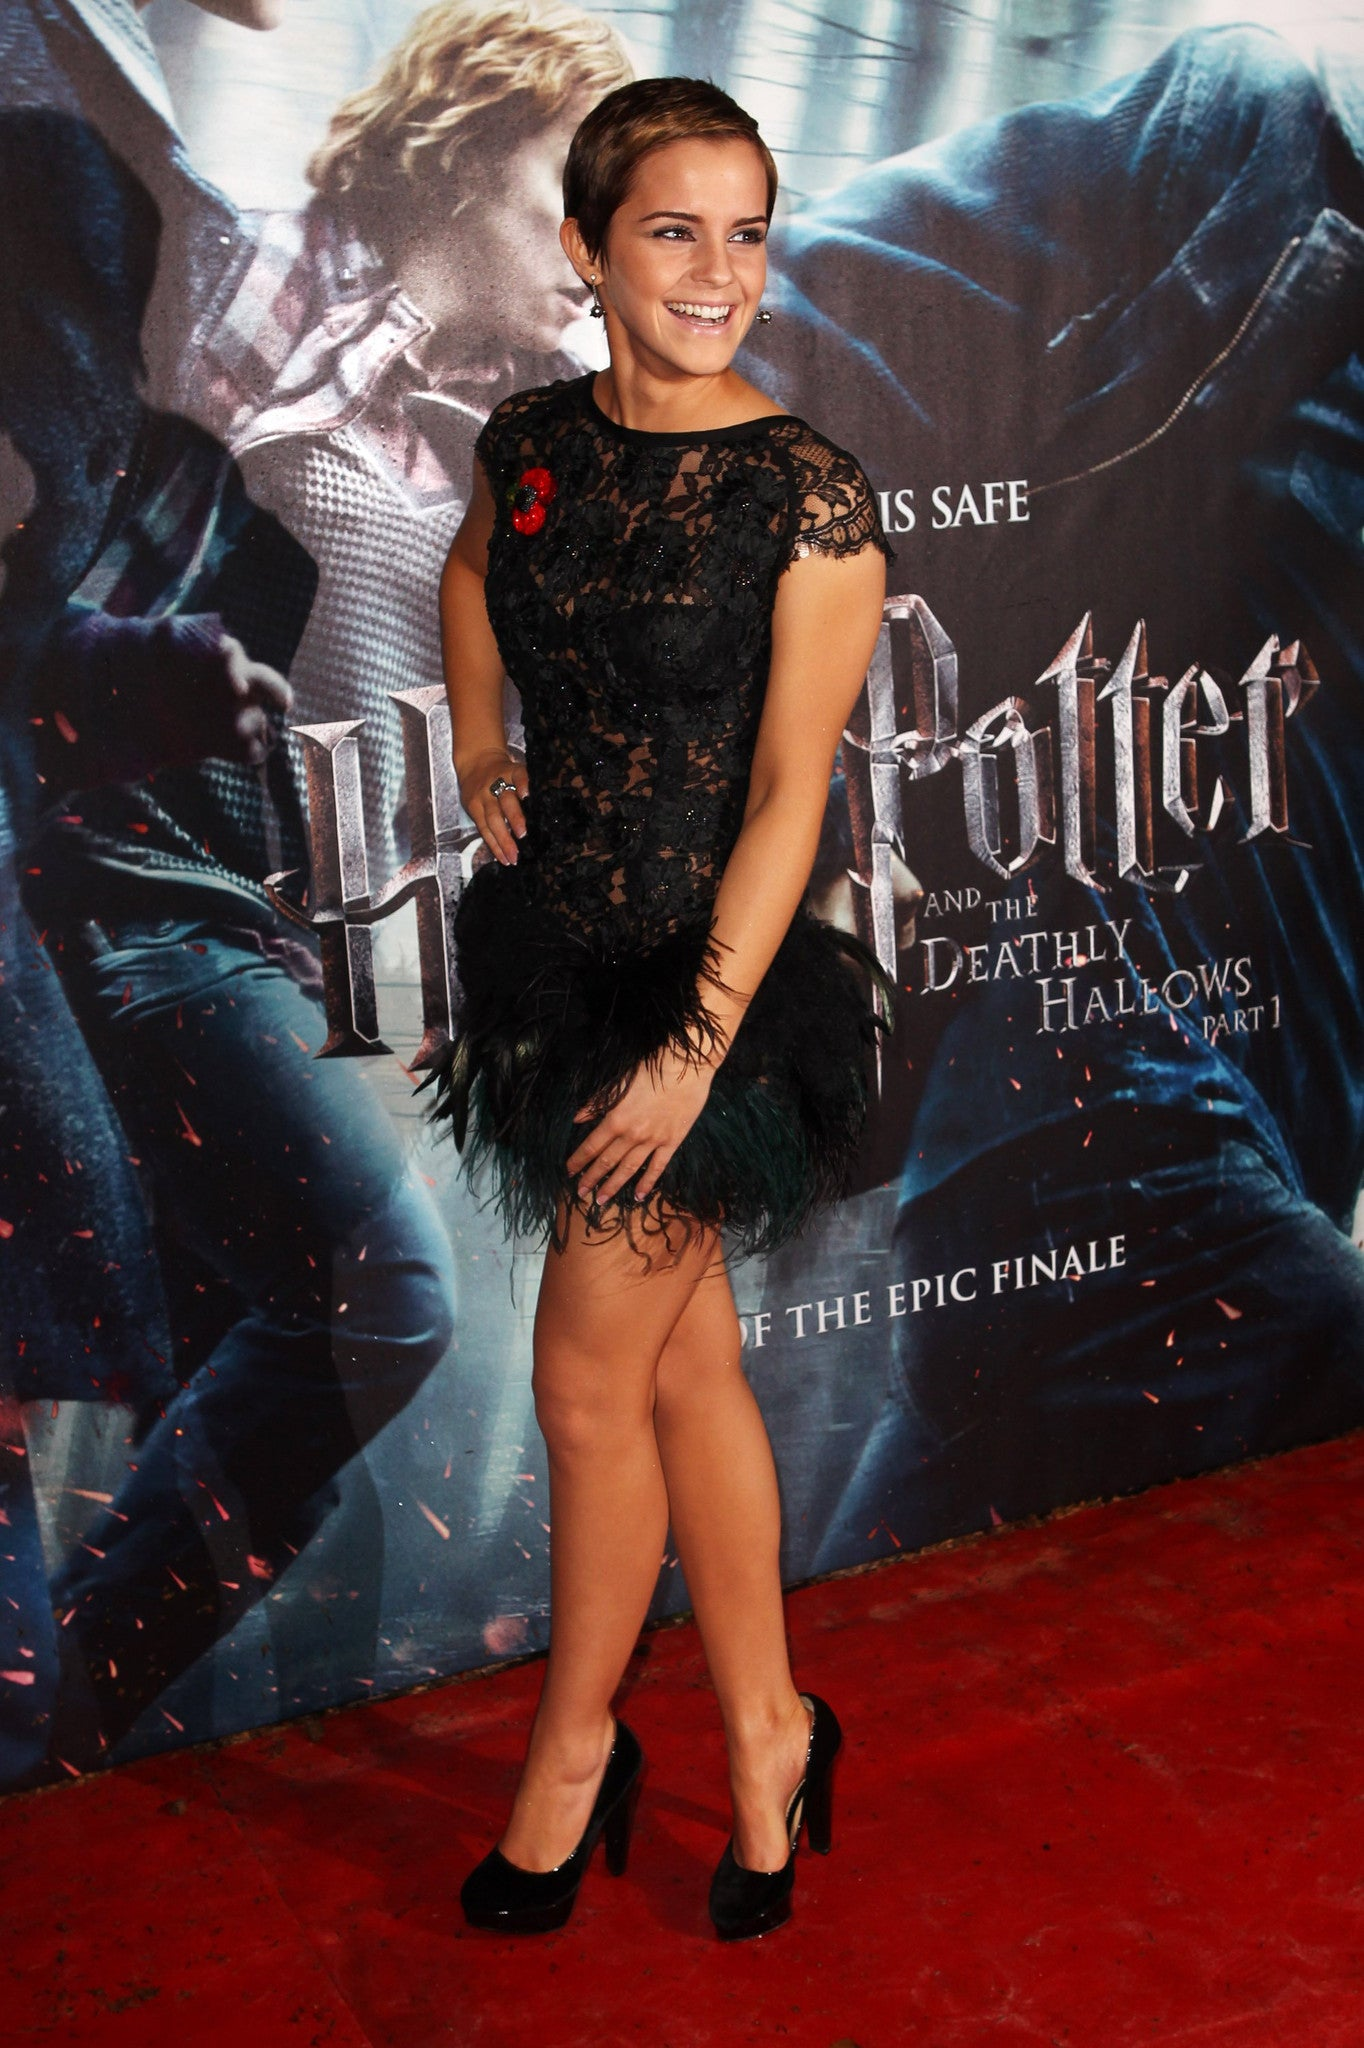 Emma Watson - Harry Potter and the Deathly Hallows Part 1 Premiere